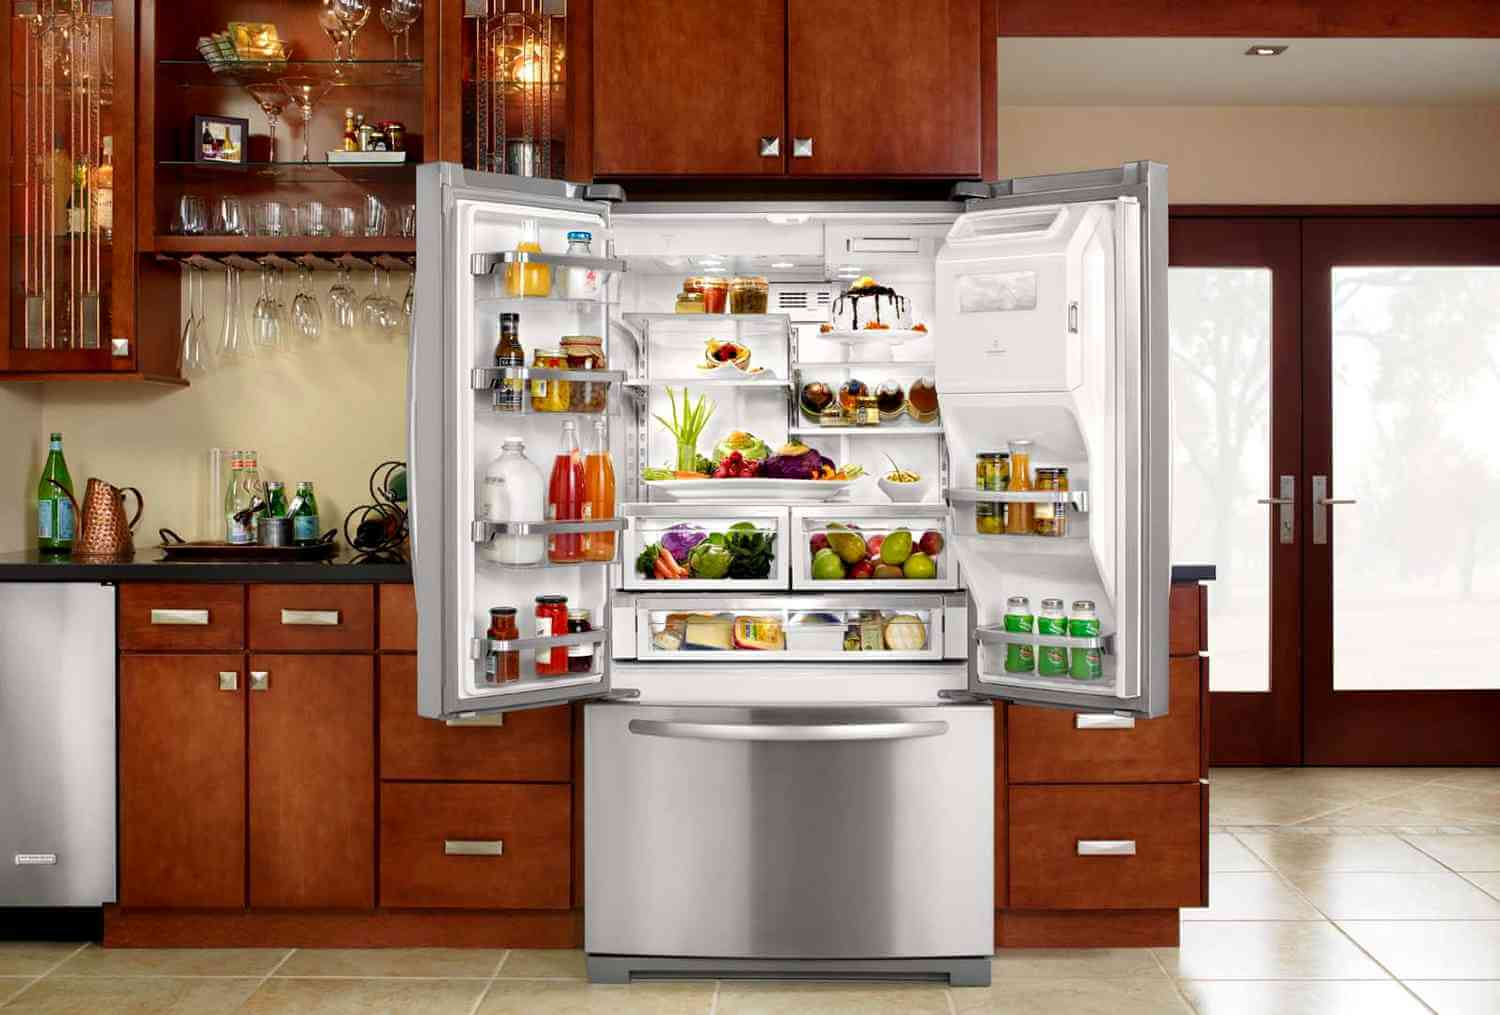 Perfect refrigerator: what does it look like?